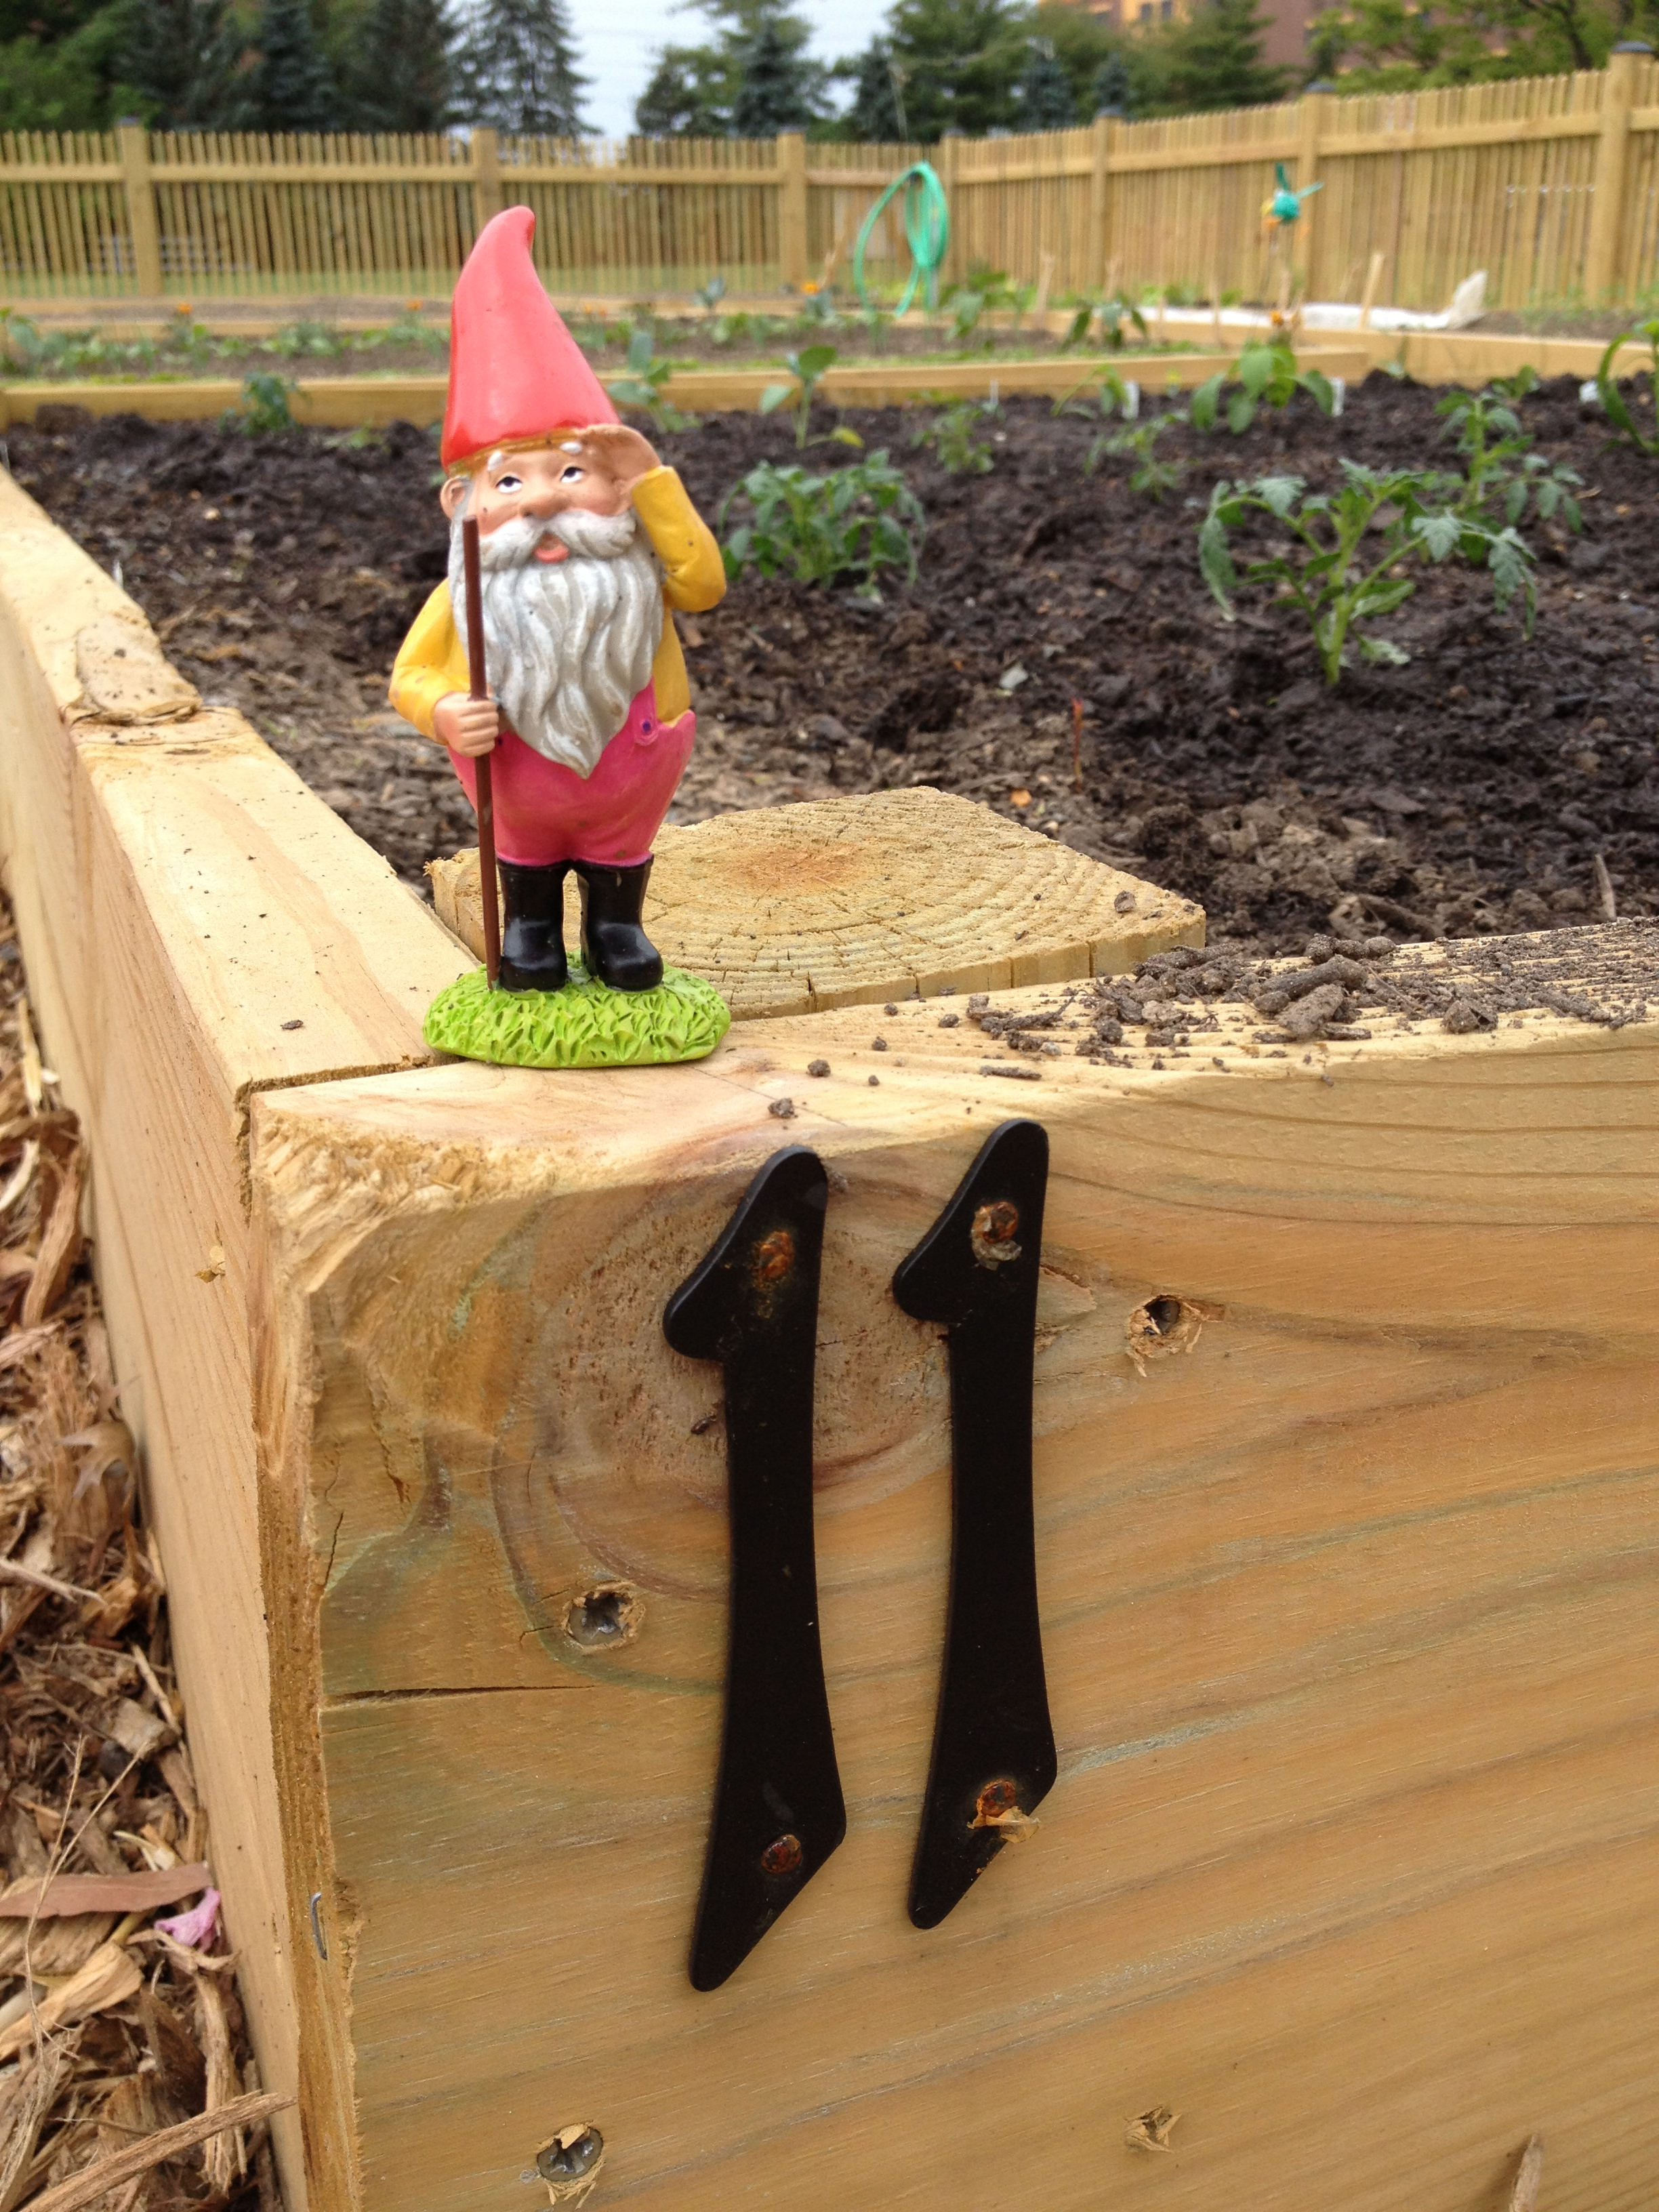 Herb the Garden Guarding Gnome